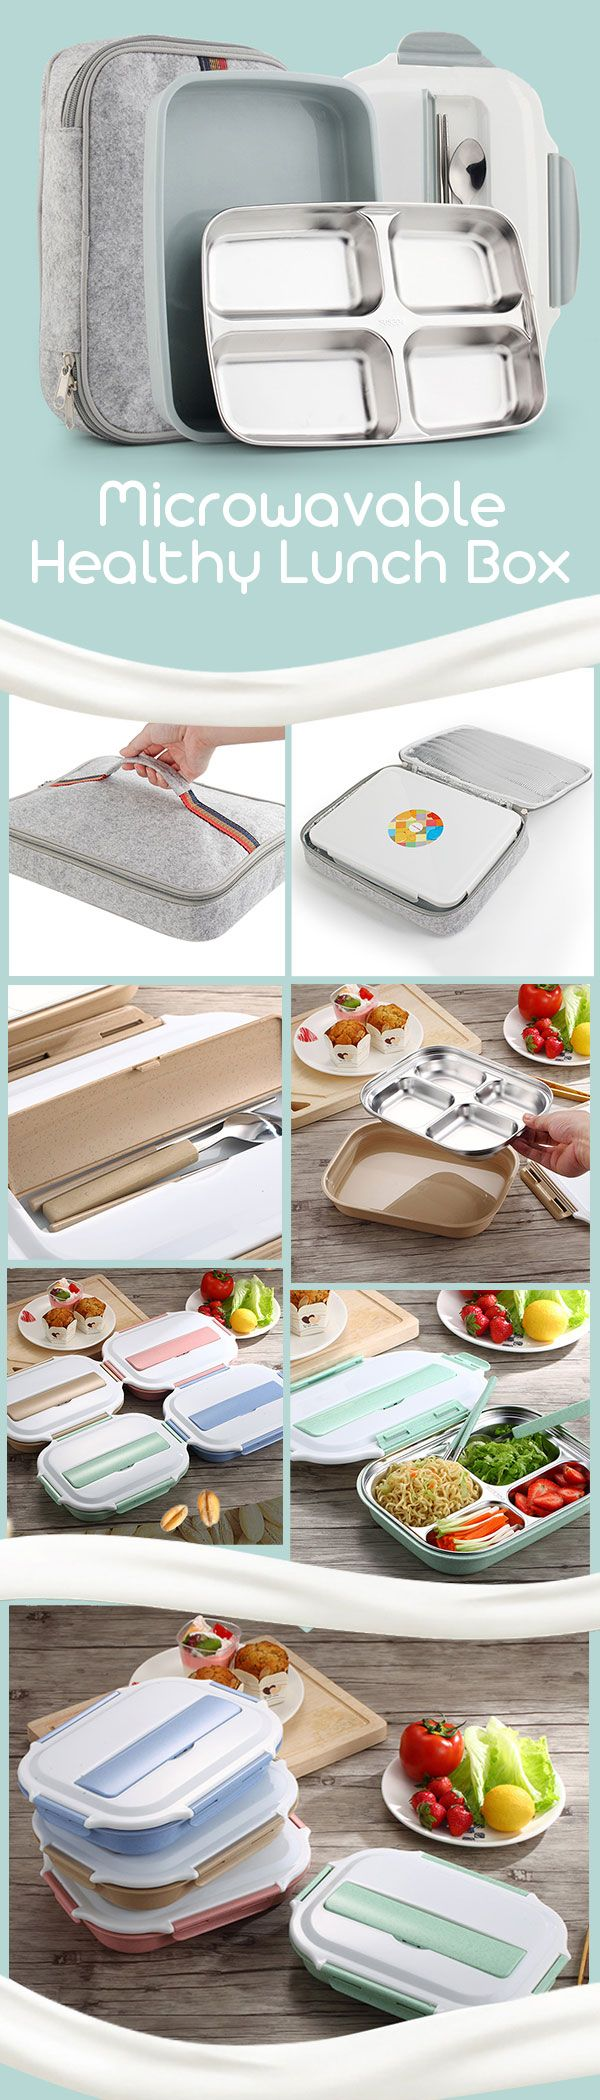 The microwave lunch box.It can use the microwave to heat. Humanization design.Built-in cutlery box and Convenient cover. 304 stainless steel and Wheat Straw material.Healthy and safety. Portable Outdoor.Suitable for children Kids to School,Picnic,Camping. Guys, click the pic or the visit button to check out our purchasing page if you'd like to have one:)